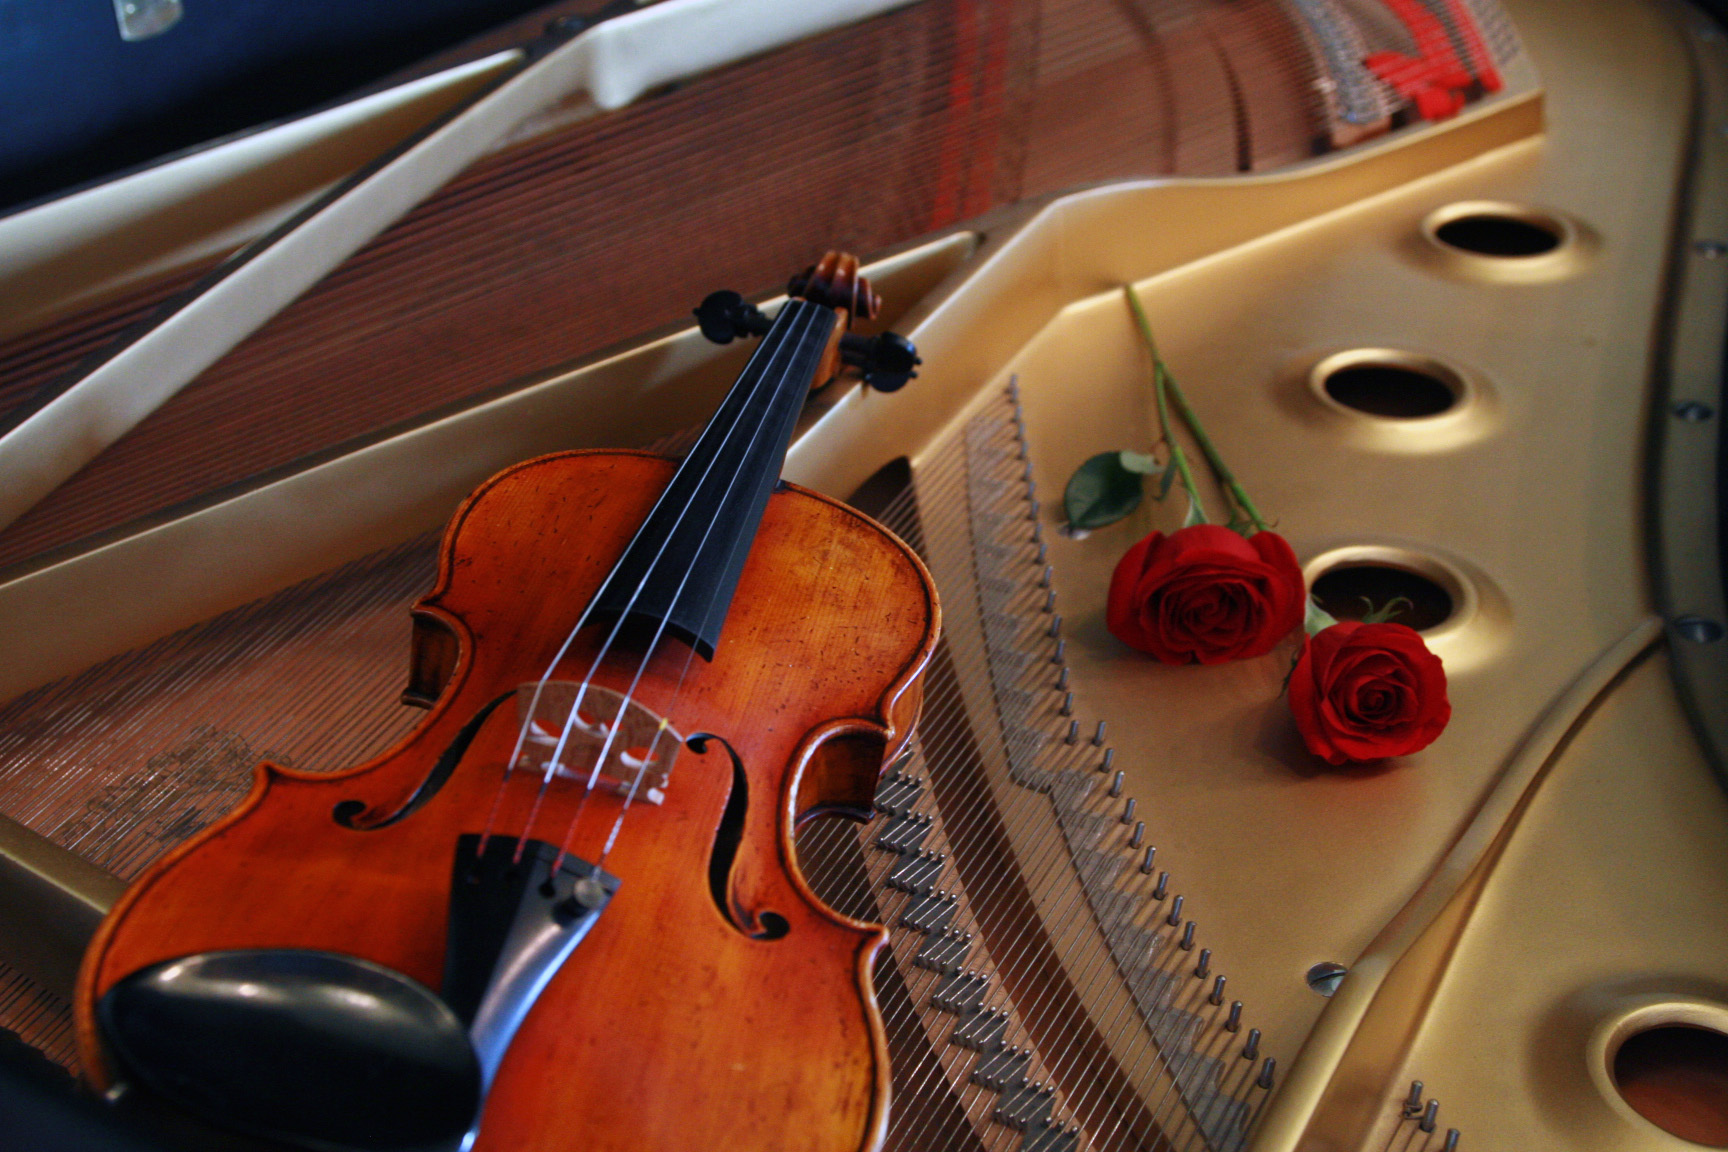 Violin Piano Wallpaper Inside The By Nateeboy68 1728x1152